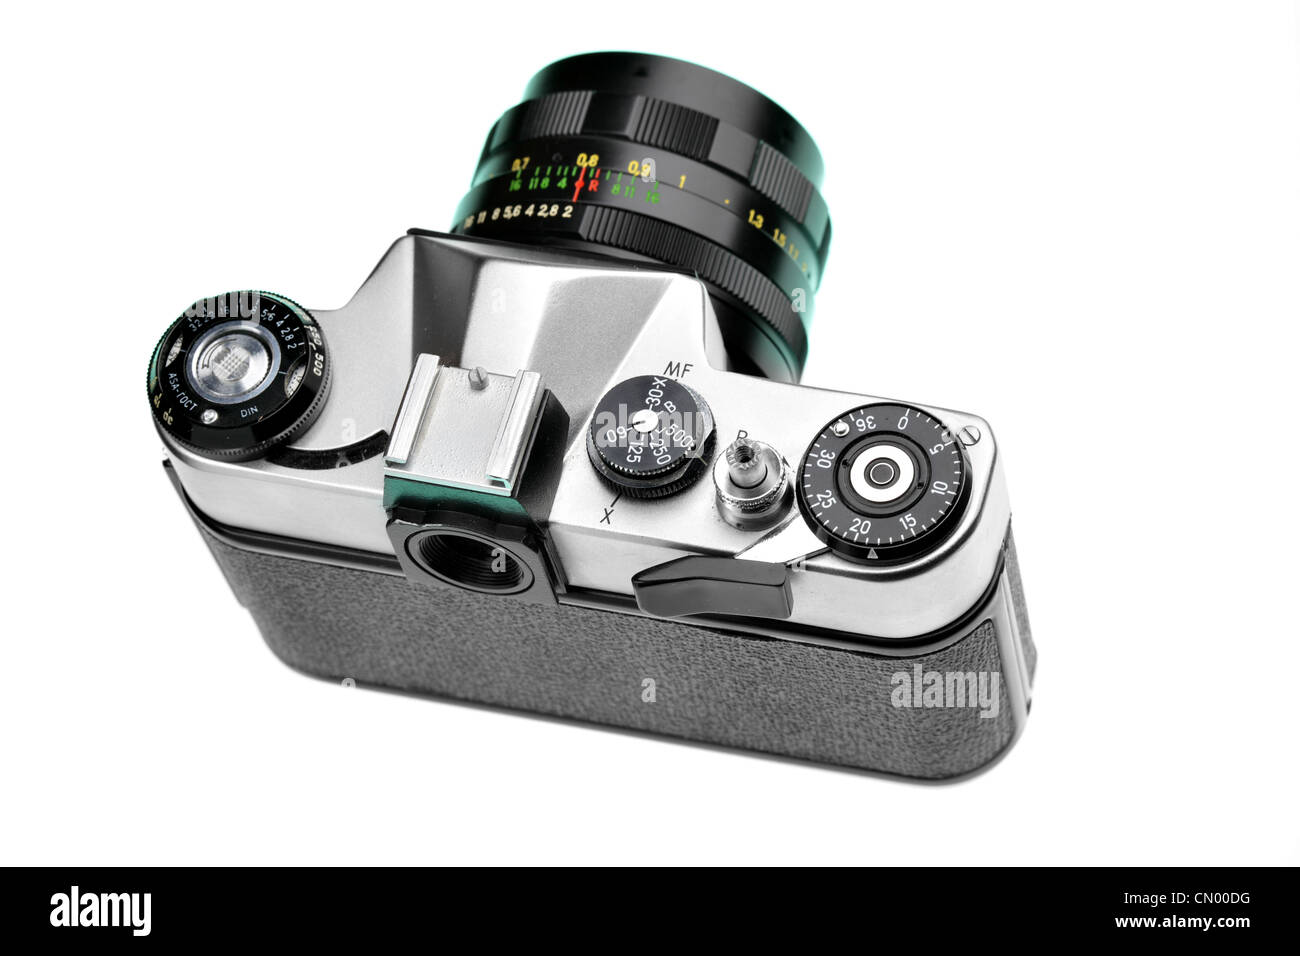 SLR camera from above isolated over white background - Stock Image